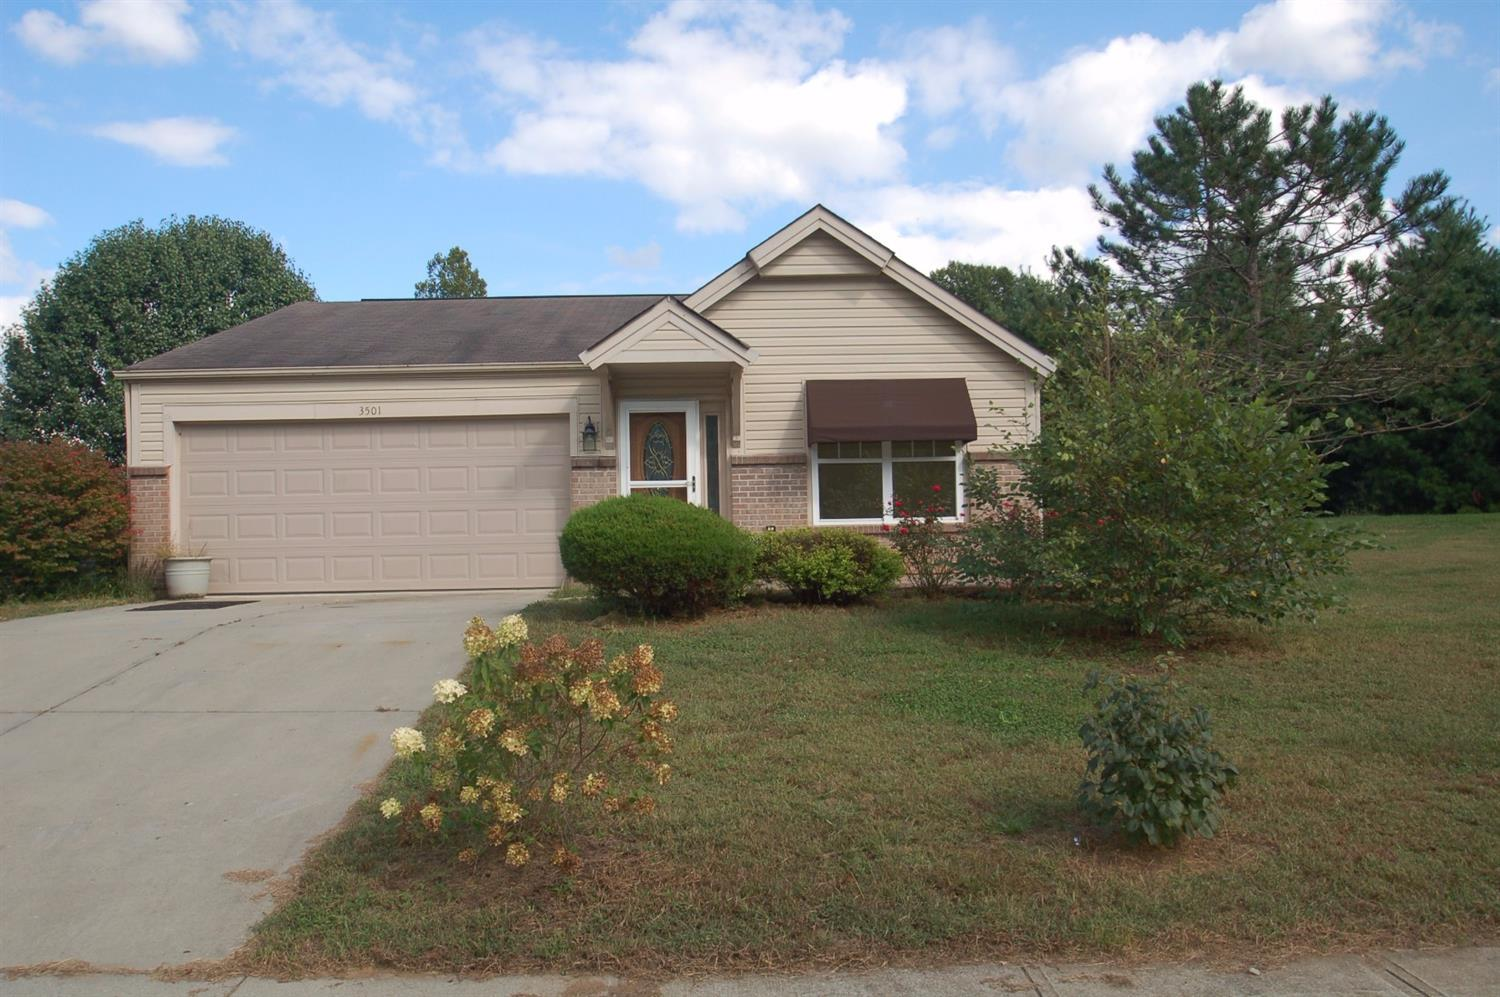 Photo 1 for 3501 Providence Trace Dr Melbourne, KY 41059